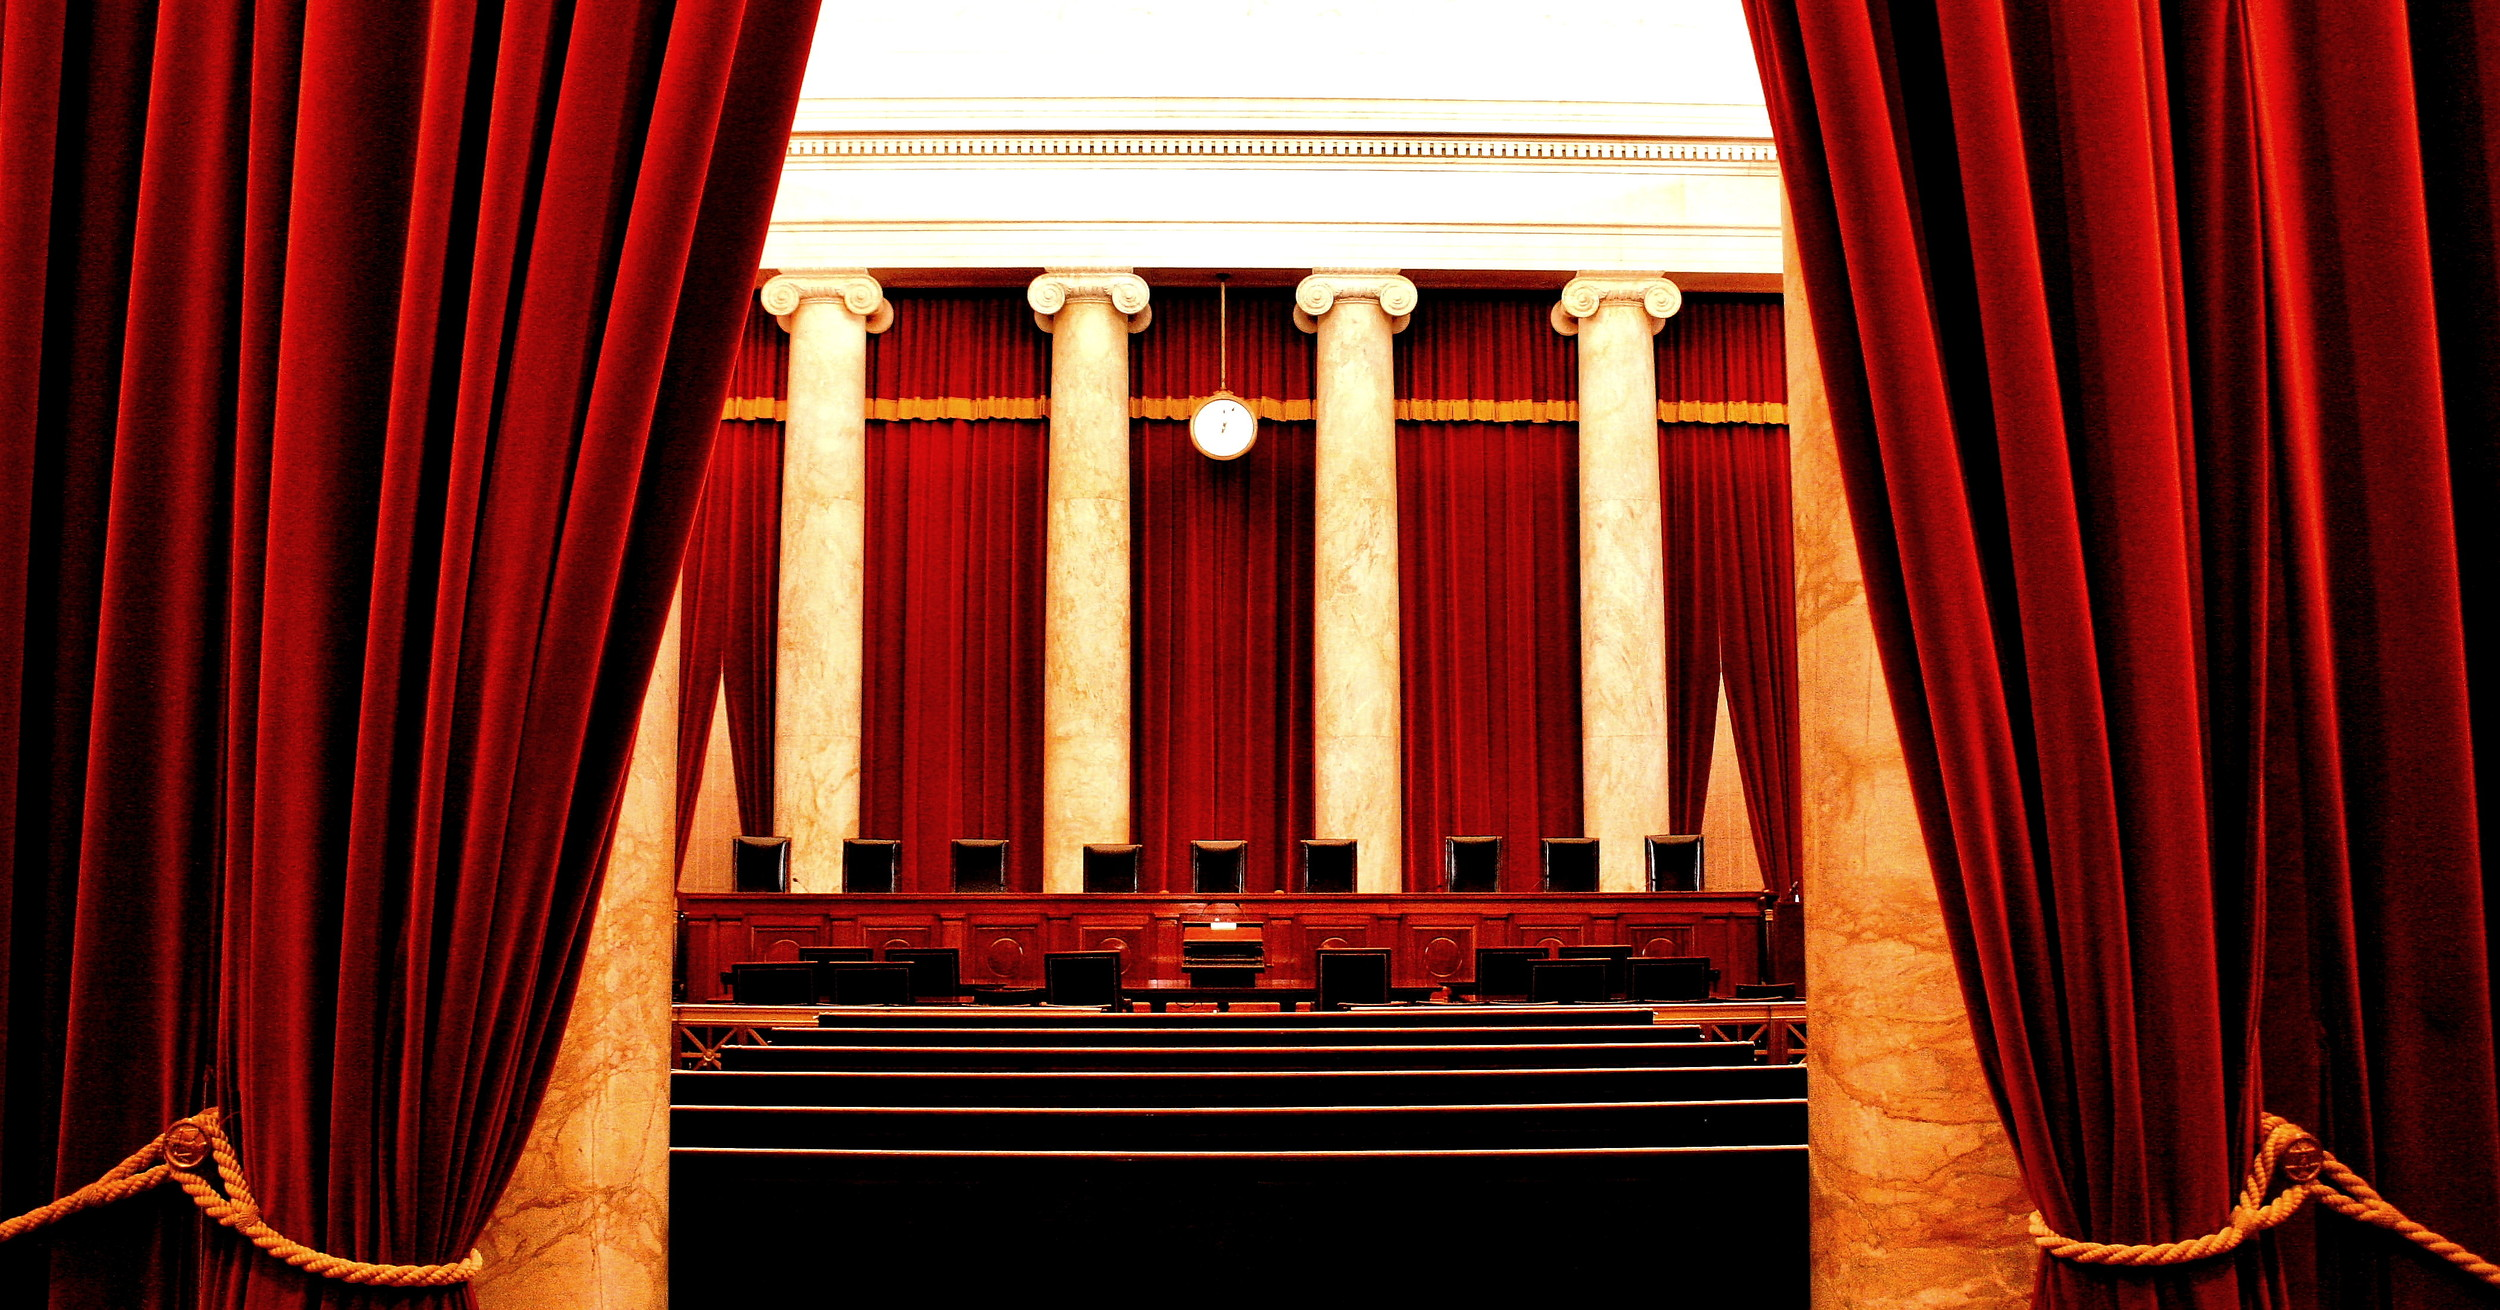 By Phil Roeder (Flickr: Supreme Court of the United States) [CC BY 2.0 (http://creativecommons.org/licenses/by/2.0)], via Wikimedia Commons.